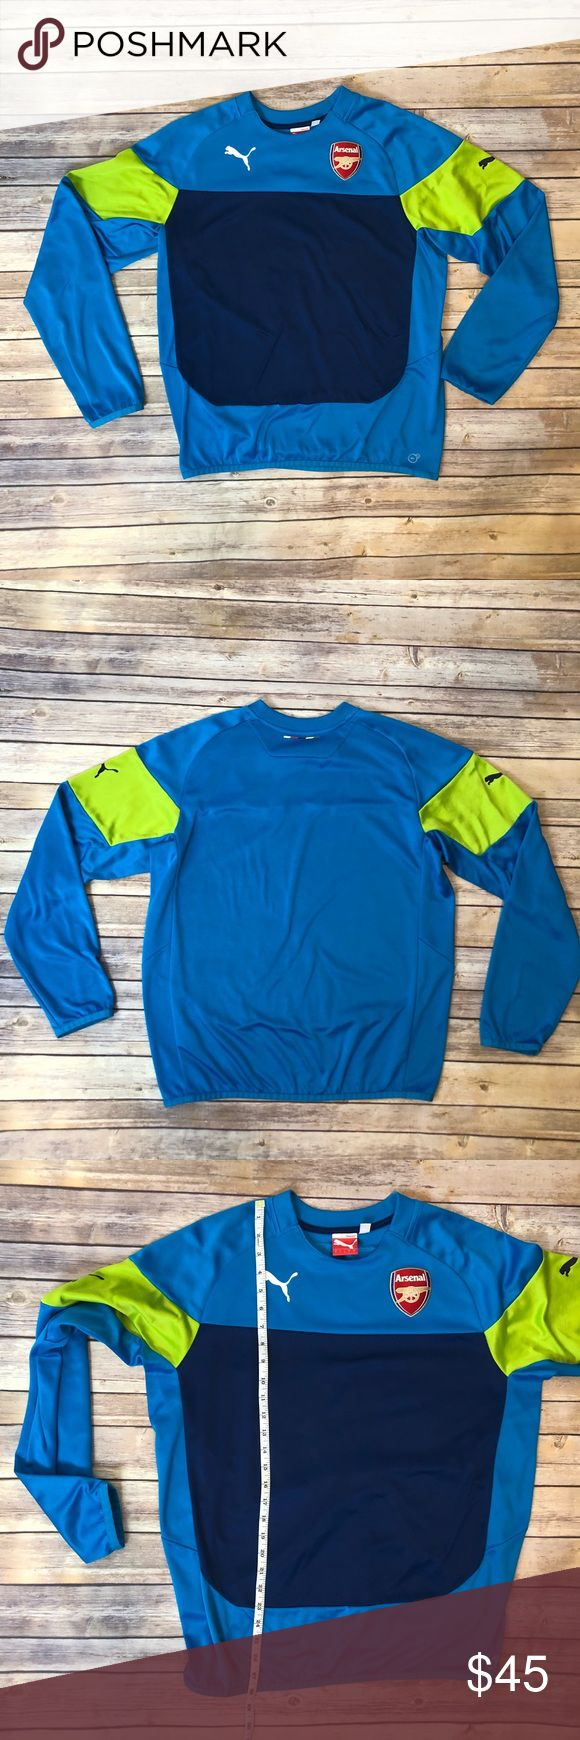 PUMA Men's Arsenal Long Sleeve Soccer Jersey L Puma brand men's long-sleeved Arsenal goalkeeper soccer tee, size large. Bright blue body with navy and vibrant neon green accents. Front arsenal club logo. Measurements and fabric content in photos. Excellent preworn condition, see photo for small fabric snag. Always happy to answer questions! Puma Shirts Tees - Long Sleeve